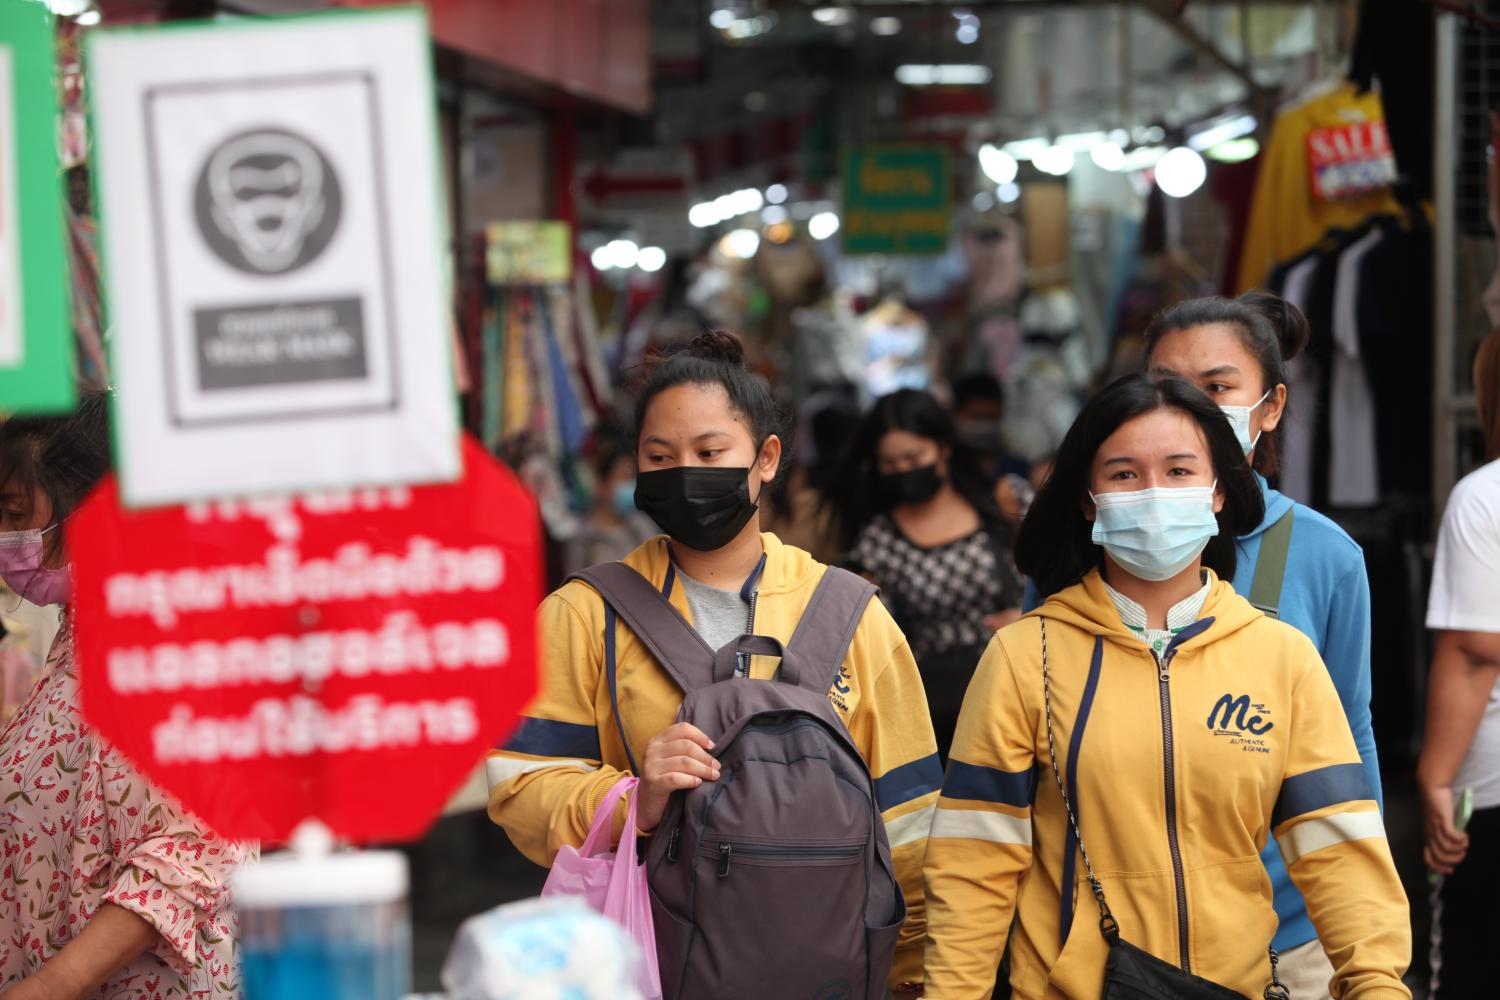 People wear face masks to prevent the spread of Covid-19 at Pratunam market following a recent outbreak. (Photo by Apichart Jinakul)